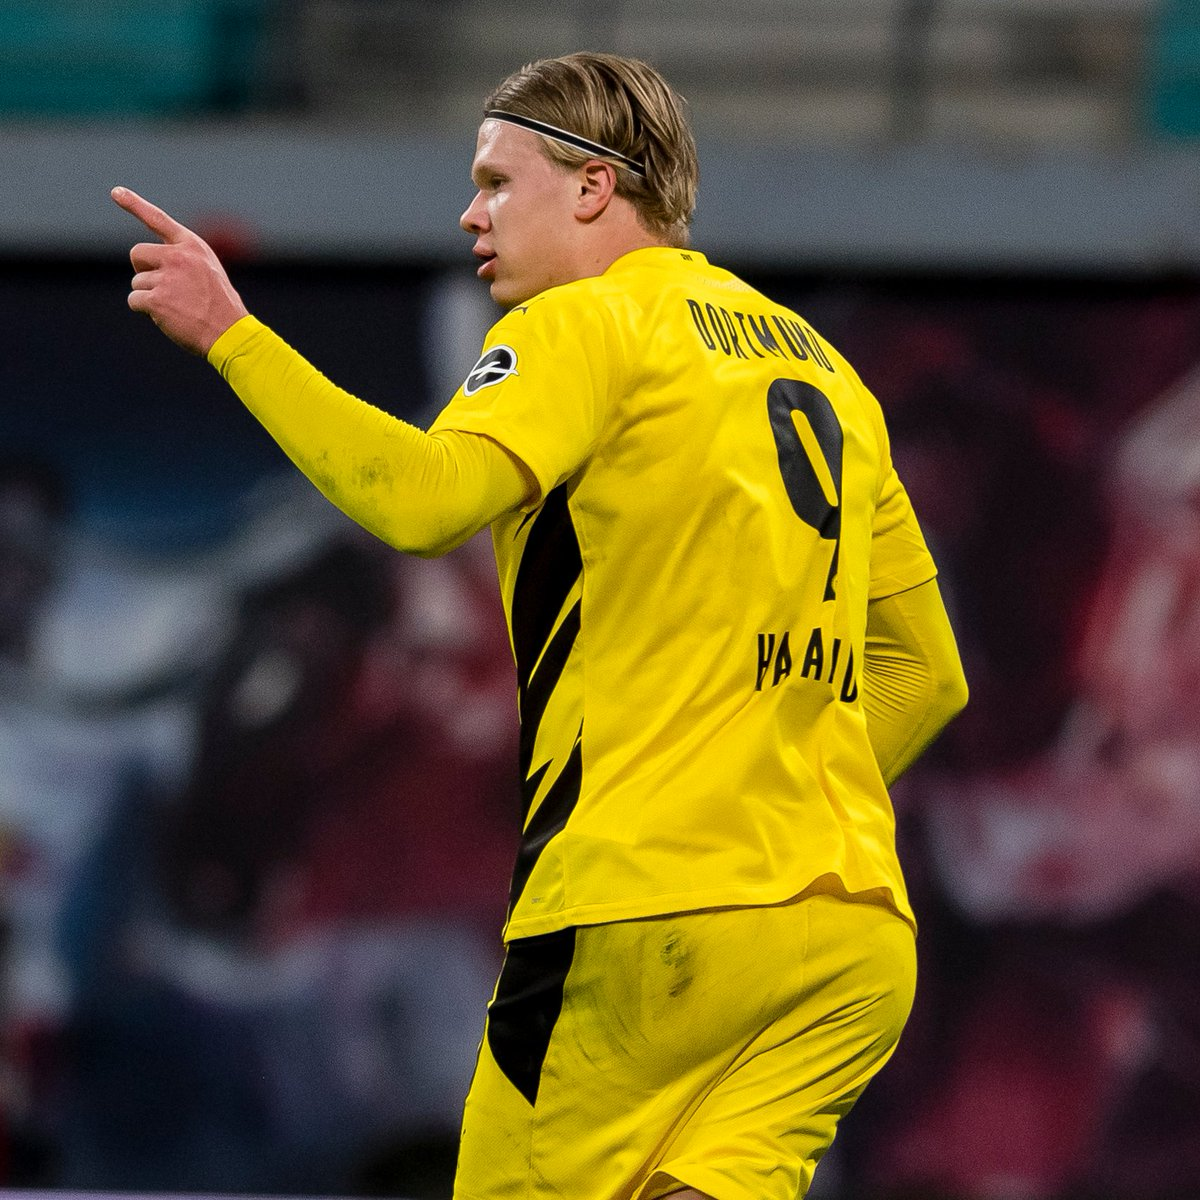 🖤💛 Erling Haaland has now scored 37 goals in 37 games for Dortmund in all competitions 🔥🔥  #UCL